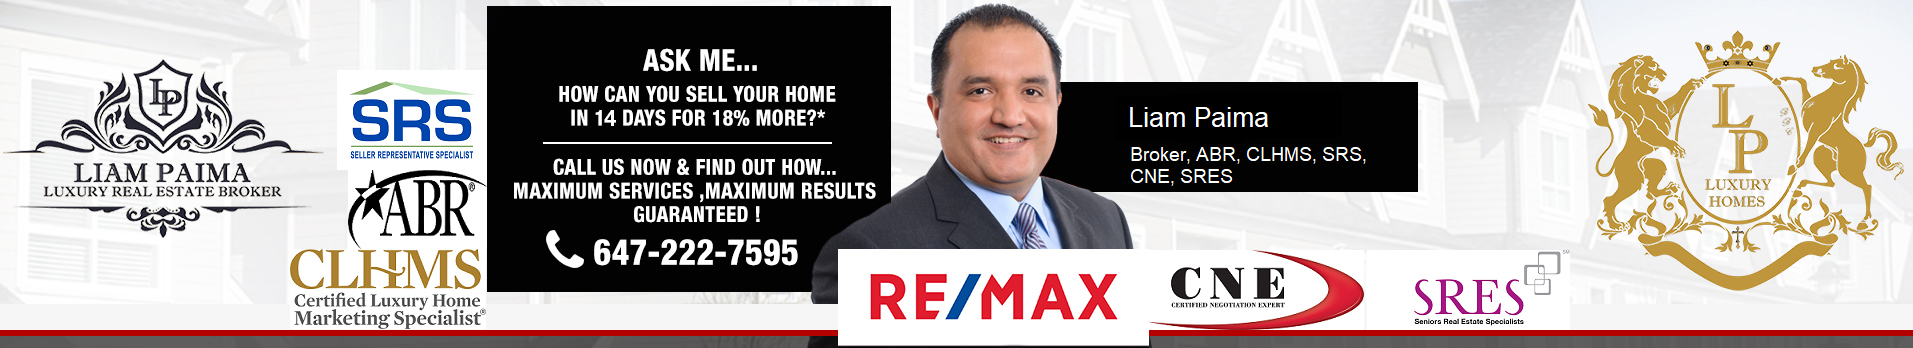 #1 Low Commission Real Estate Agent With Best Low Real Estate Commission Service In Toronto, Vaughan, Kleinburg, Oakville, Richmond Hill, Mississauga, Brampton, Milton, Caledon, Georgetown, Burlington, Orangeville, Markham - Page - 35